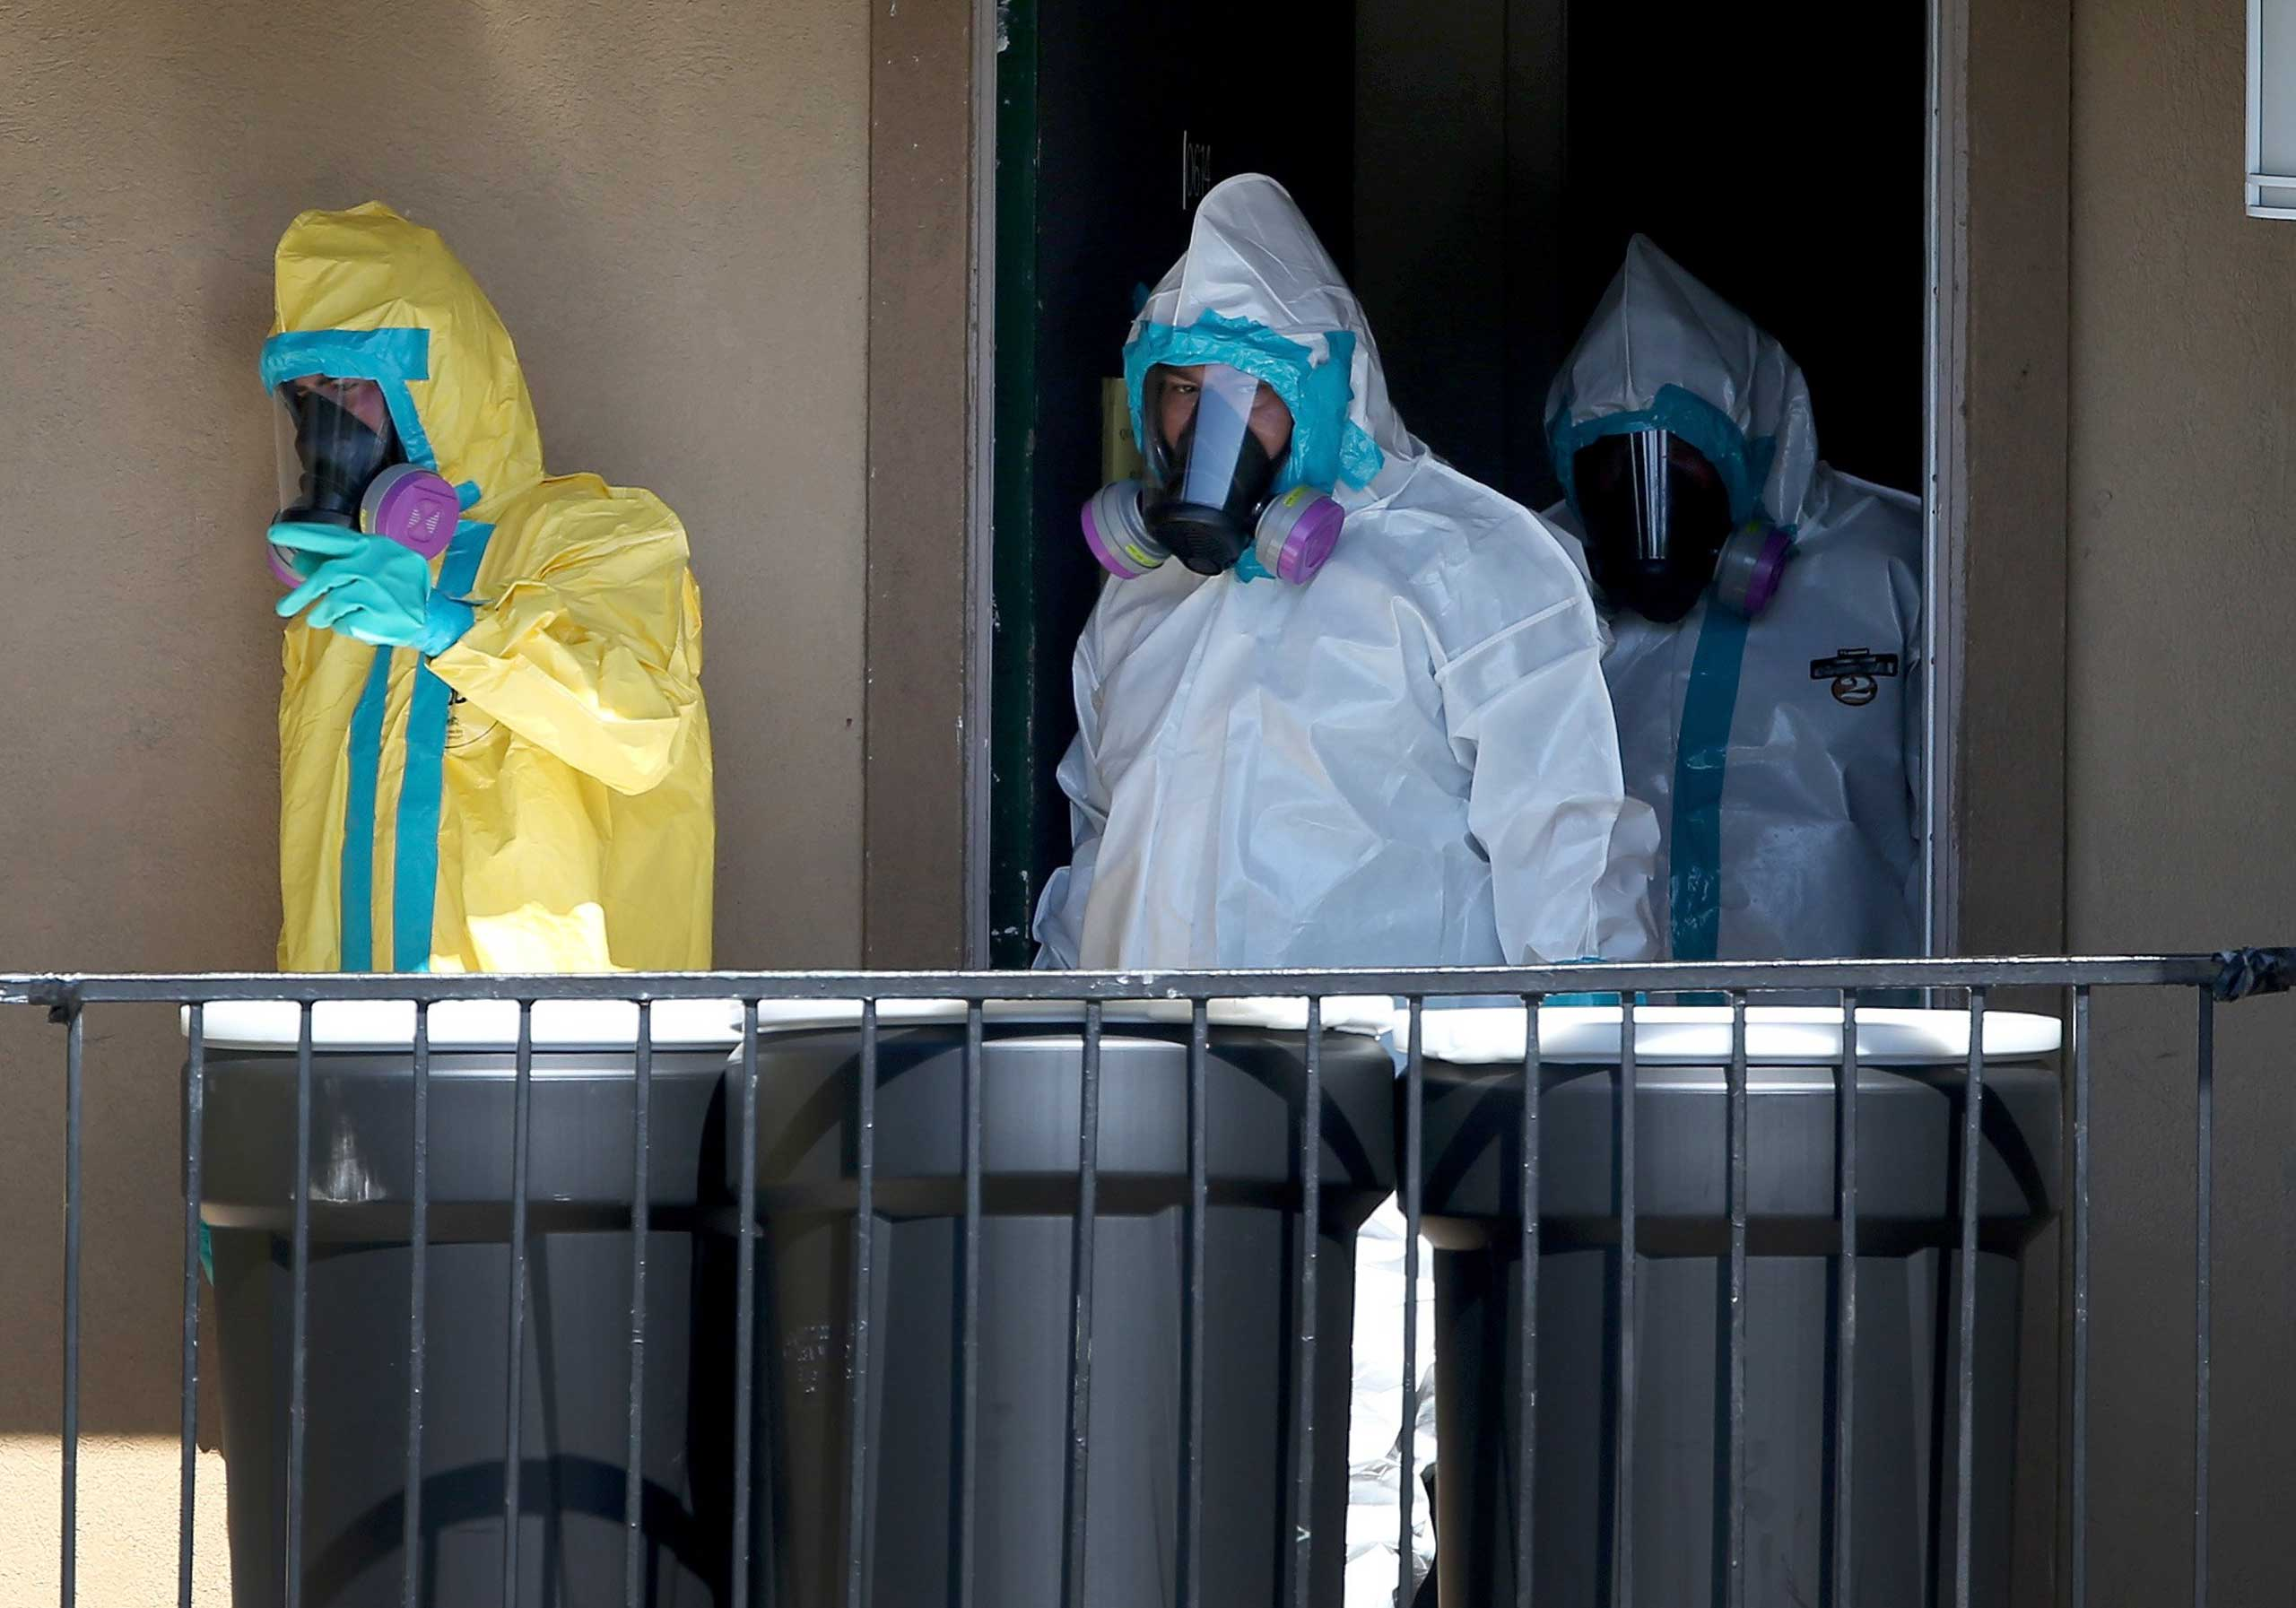 Members of the Cleaning Guys Haz Mat clean up company are seen as they sanitize the apartment where Ebola patient Thomas Eric Duncan was staying before being admitted to a hospital on Oct. 5, 2014 in Dallas.